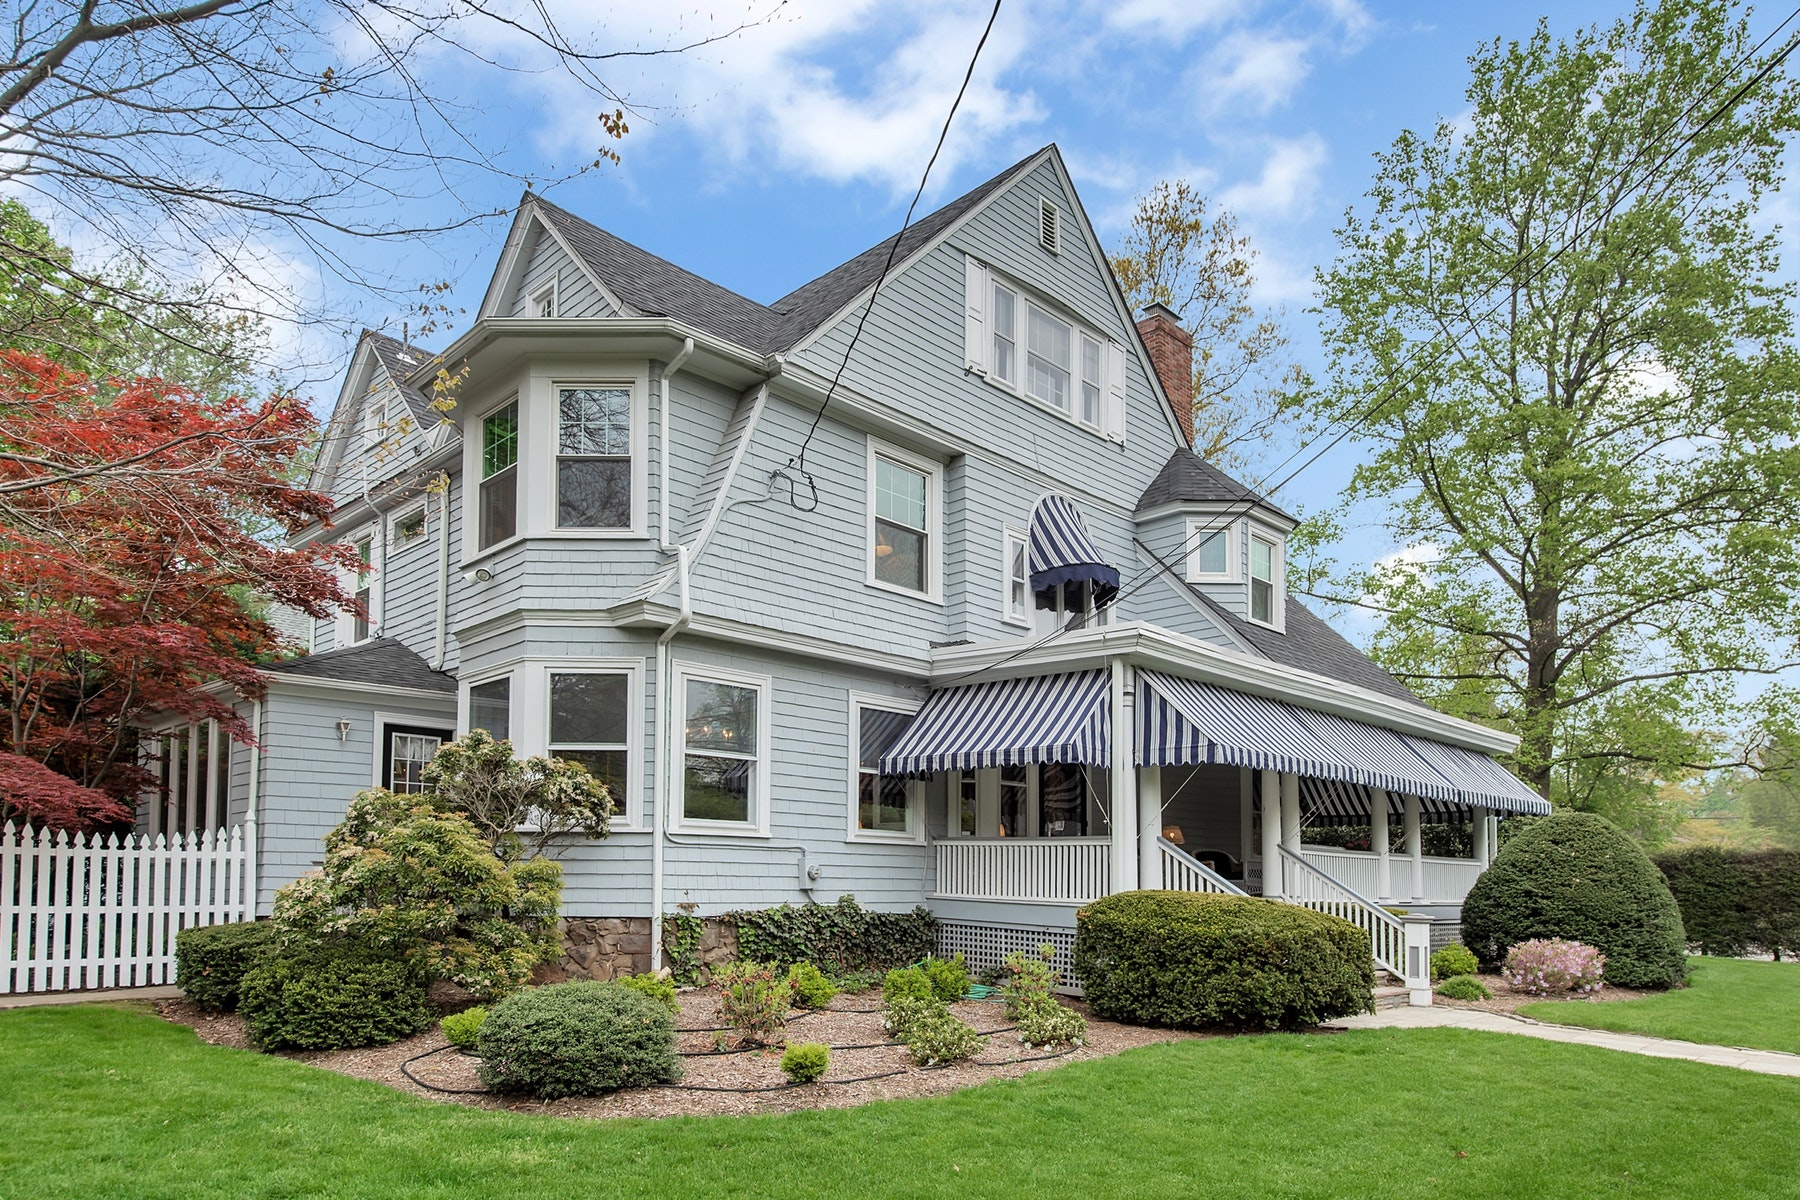 Single Family Homes for Sale at Beautiful Queen Anne Victorian 412 Park Street Montclair, New Jersey 07043 United States